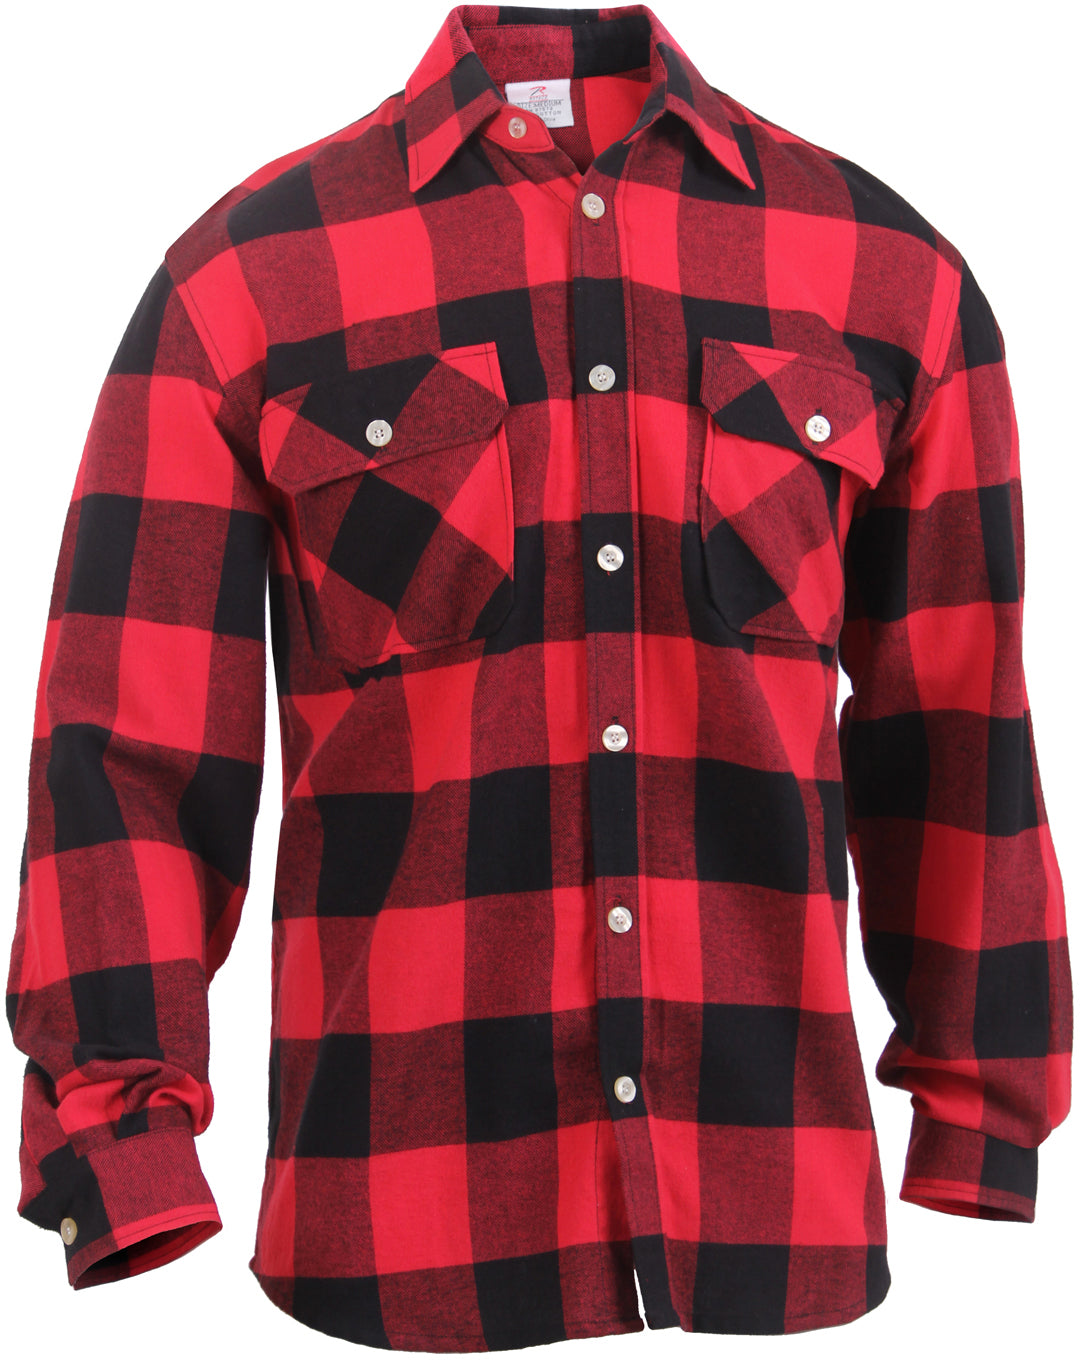 Red - Buffalo Plaid Lightweight Brawny Flannel Shirt